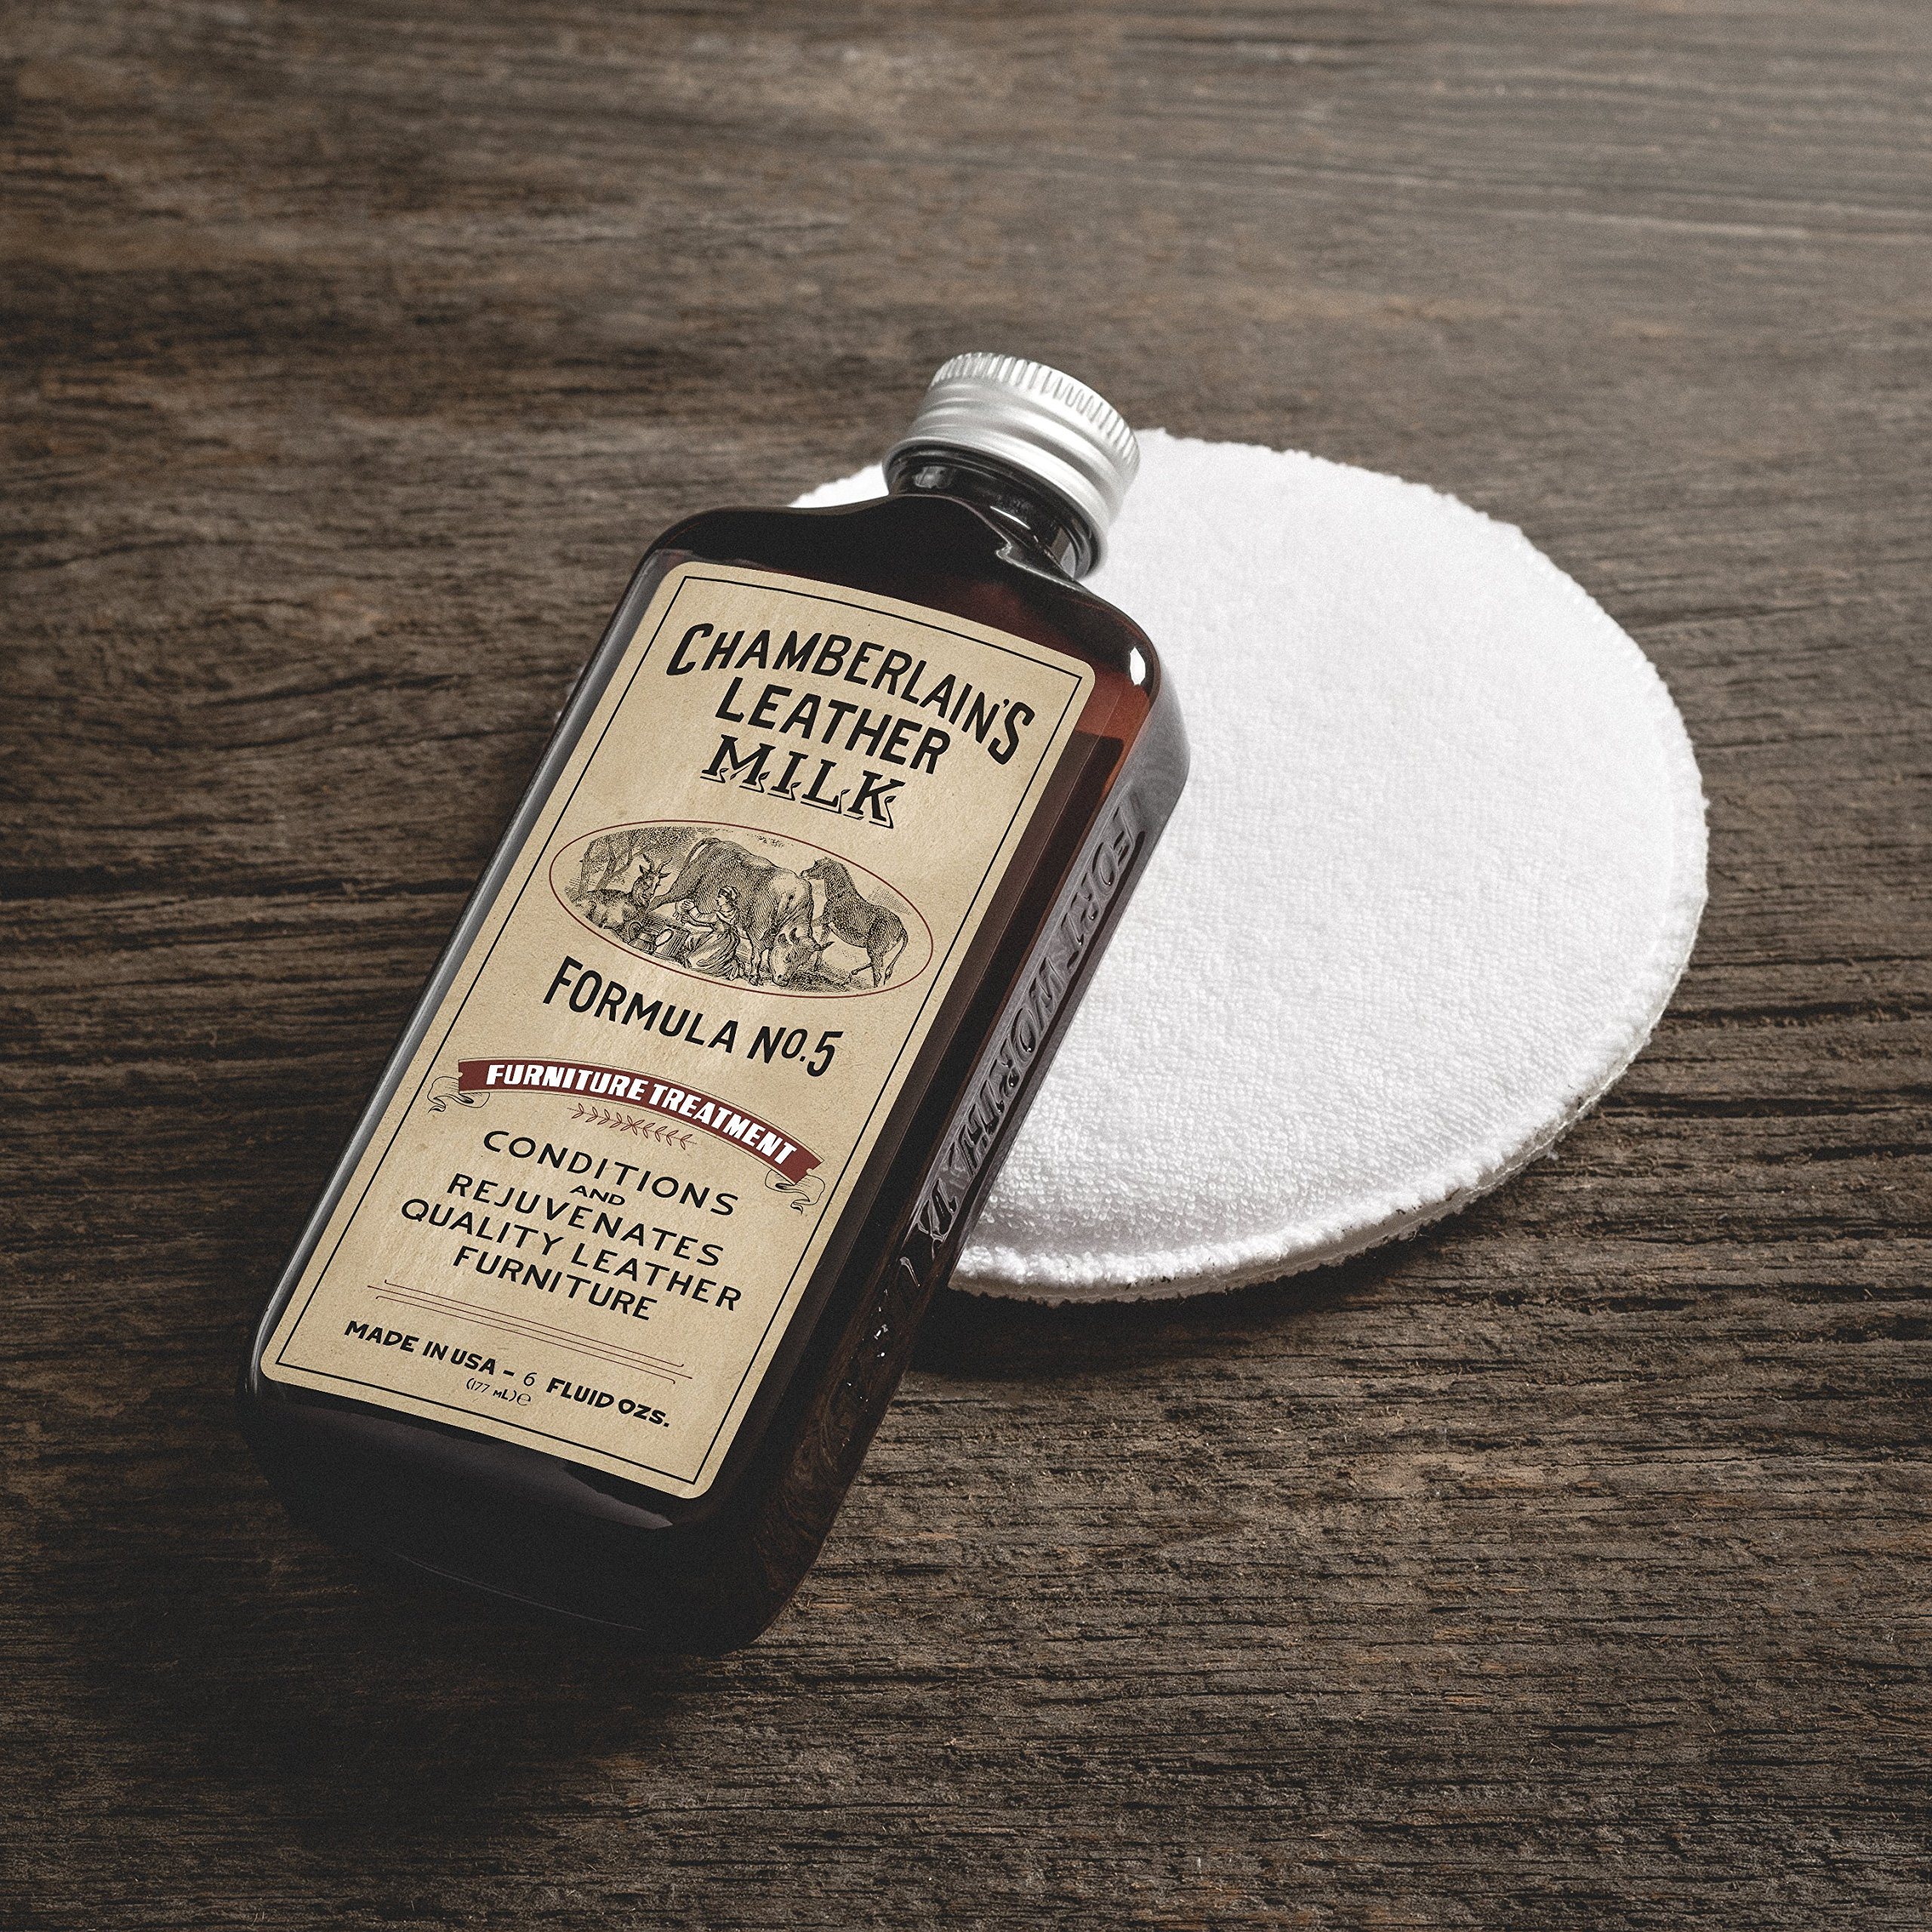 Leather Milk Leather Furniture Conditioner and Cleaner - Furniture Treatment No. 5 - For All Natural, Non-Toxic Leather Care. Made in the USA. 2 Sizes. Includes Premium Applicator Pad! by Chamberlain's Leather Milk (Image #6)